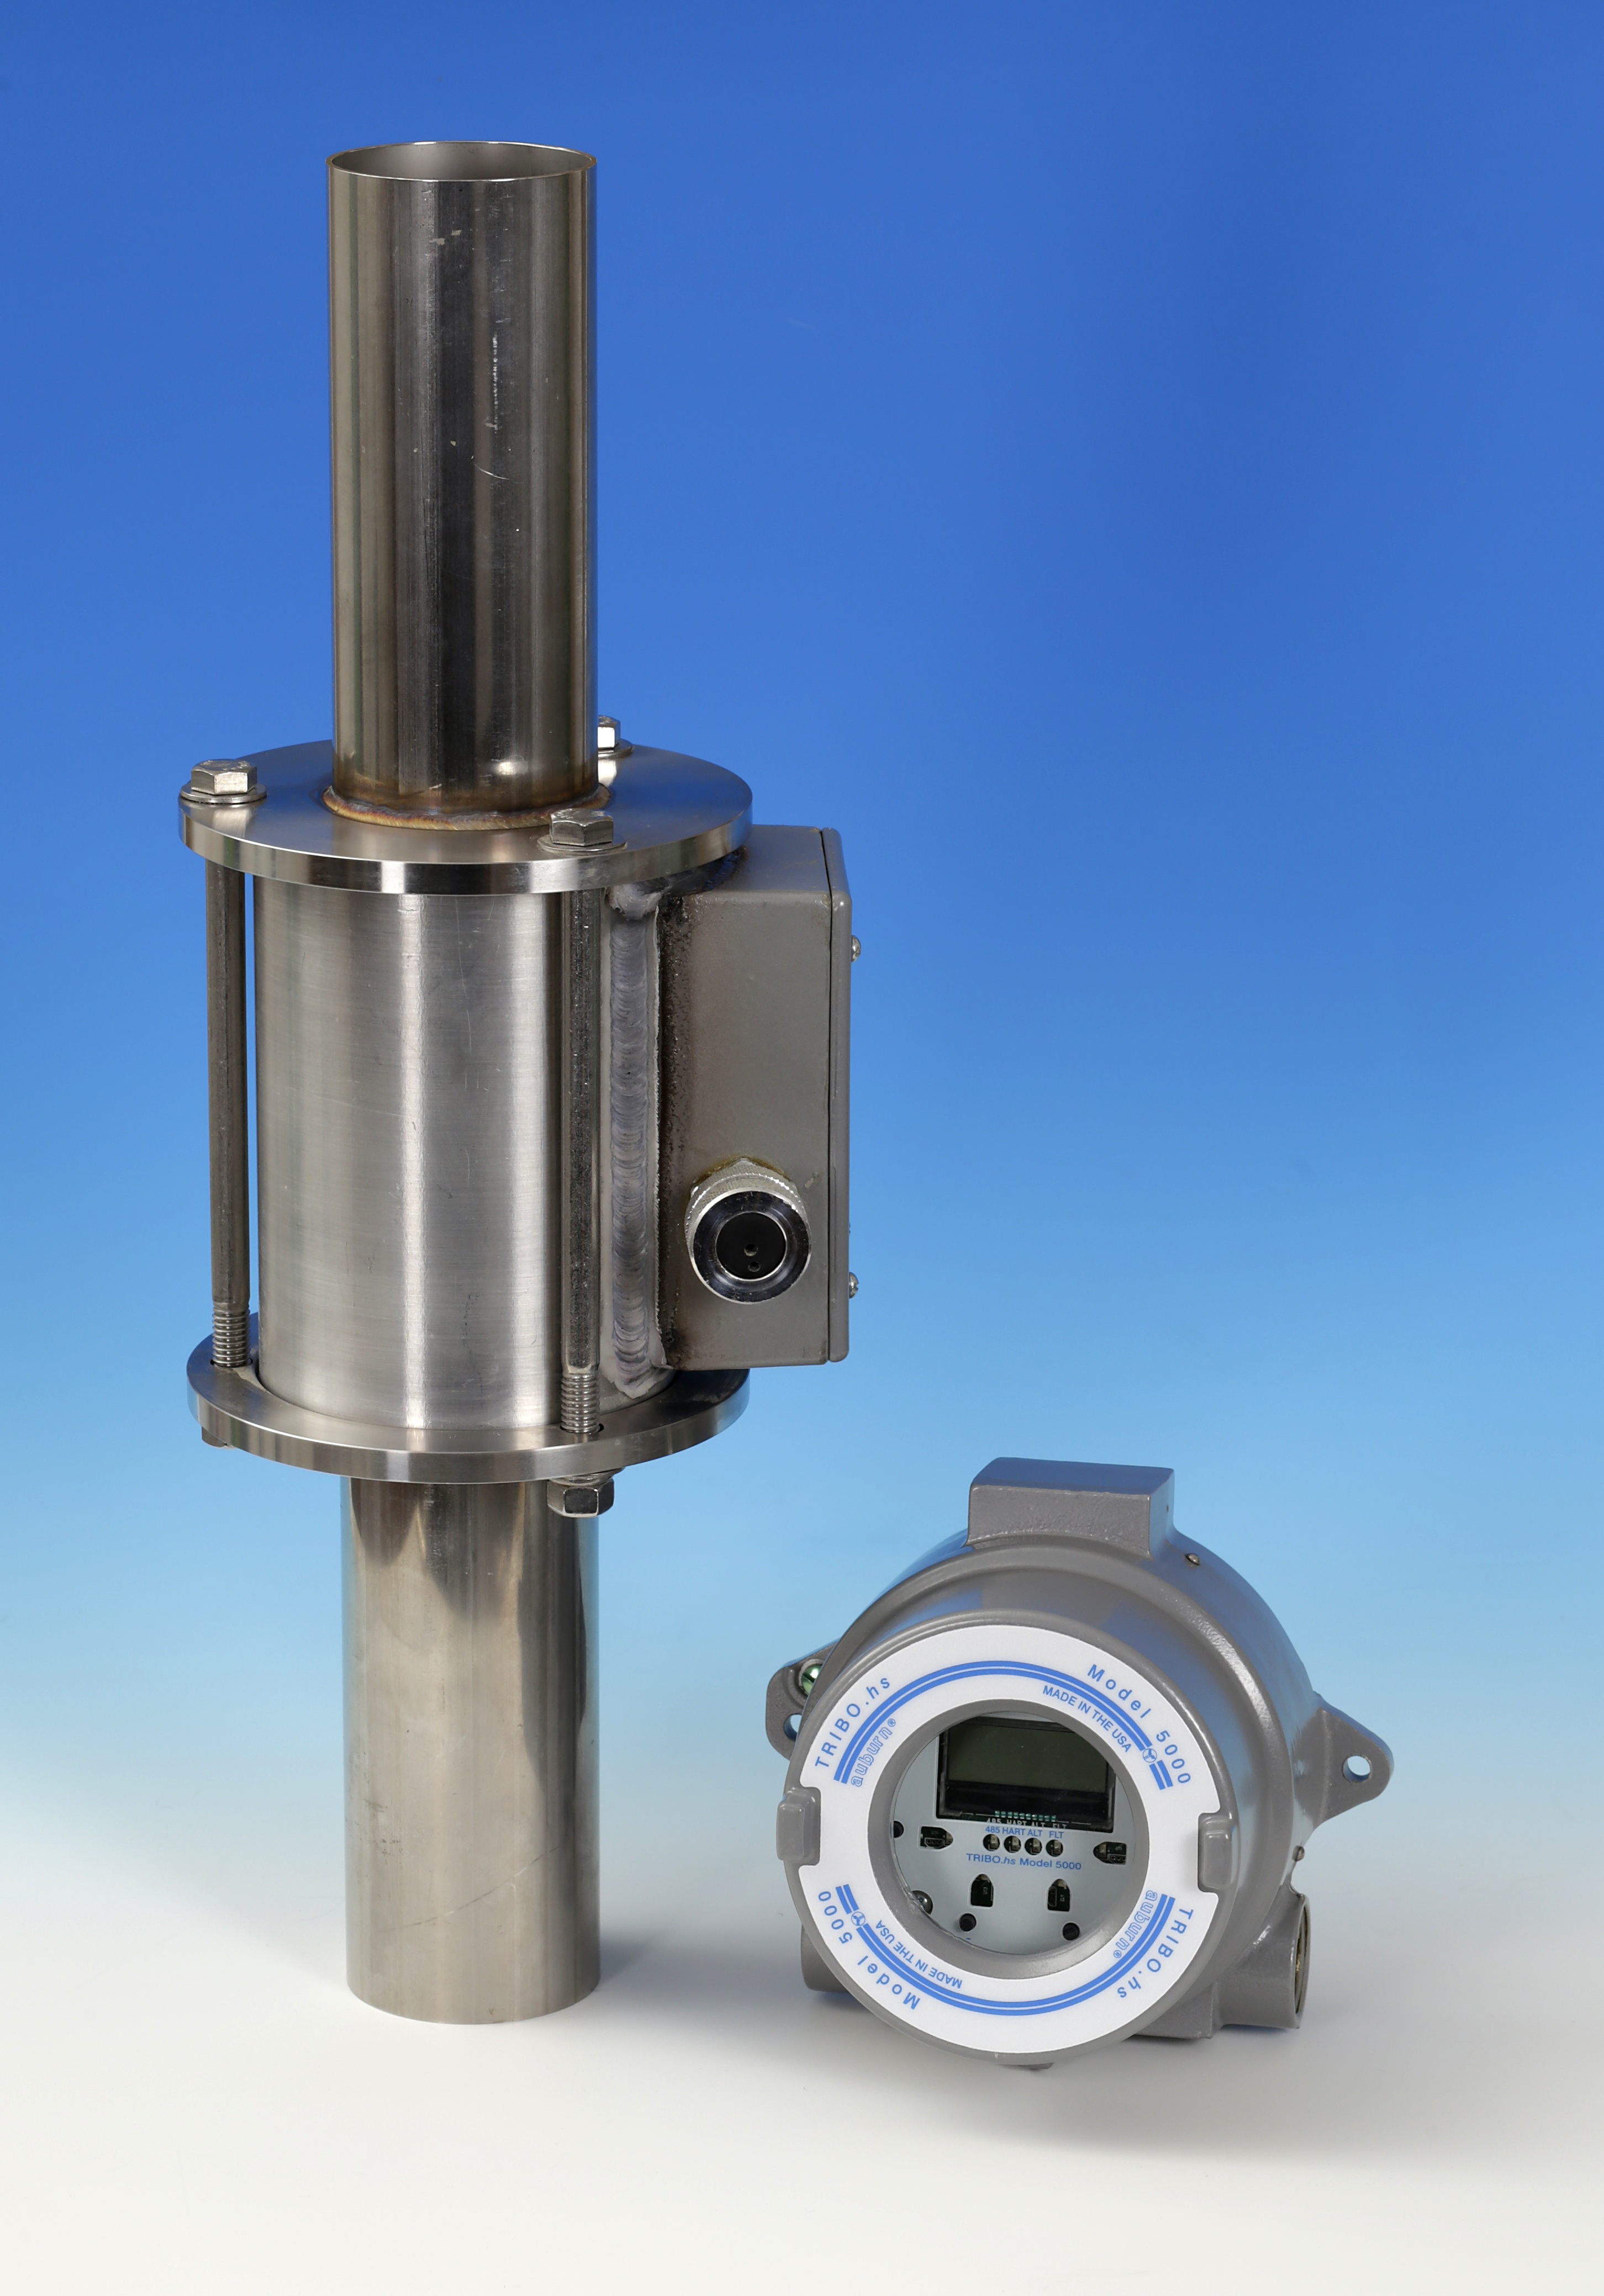 Tribo HS Model 5000 measures actual particle velocity in pneumatic conveying systems